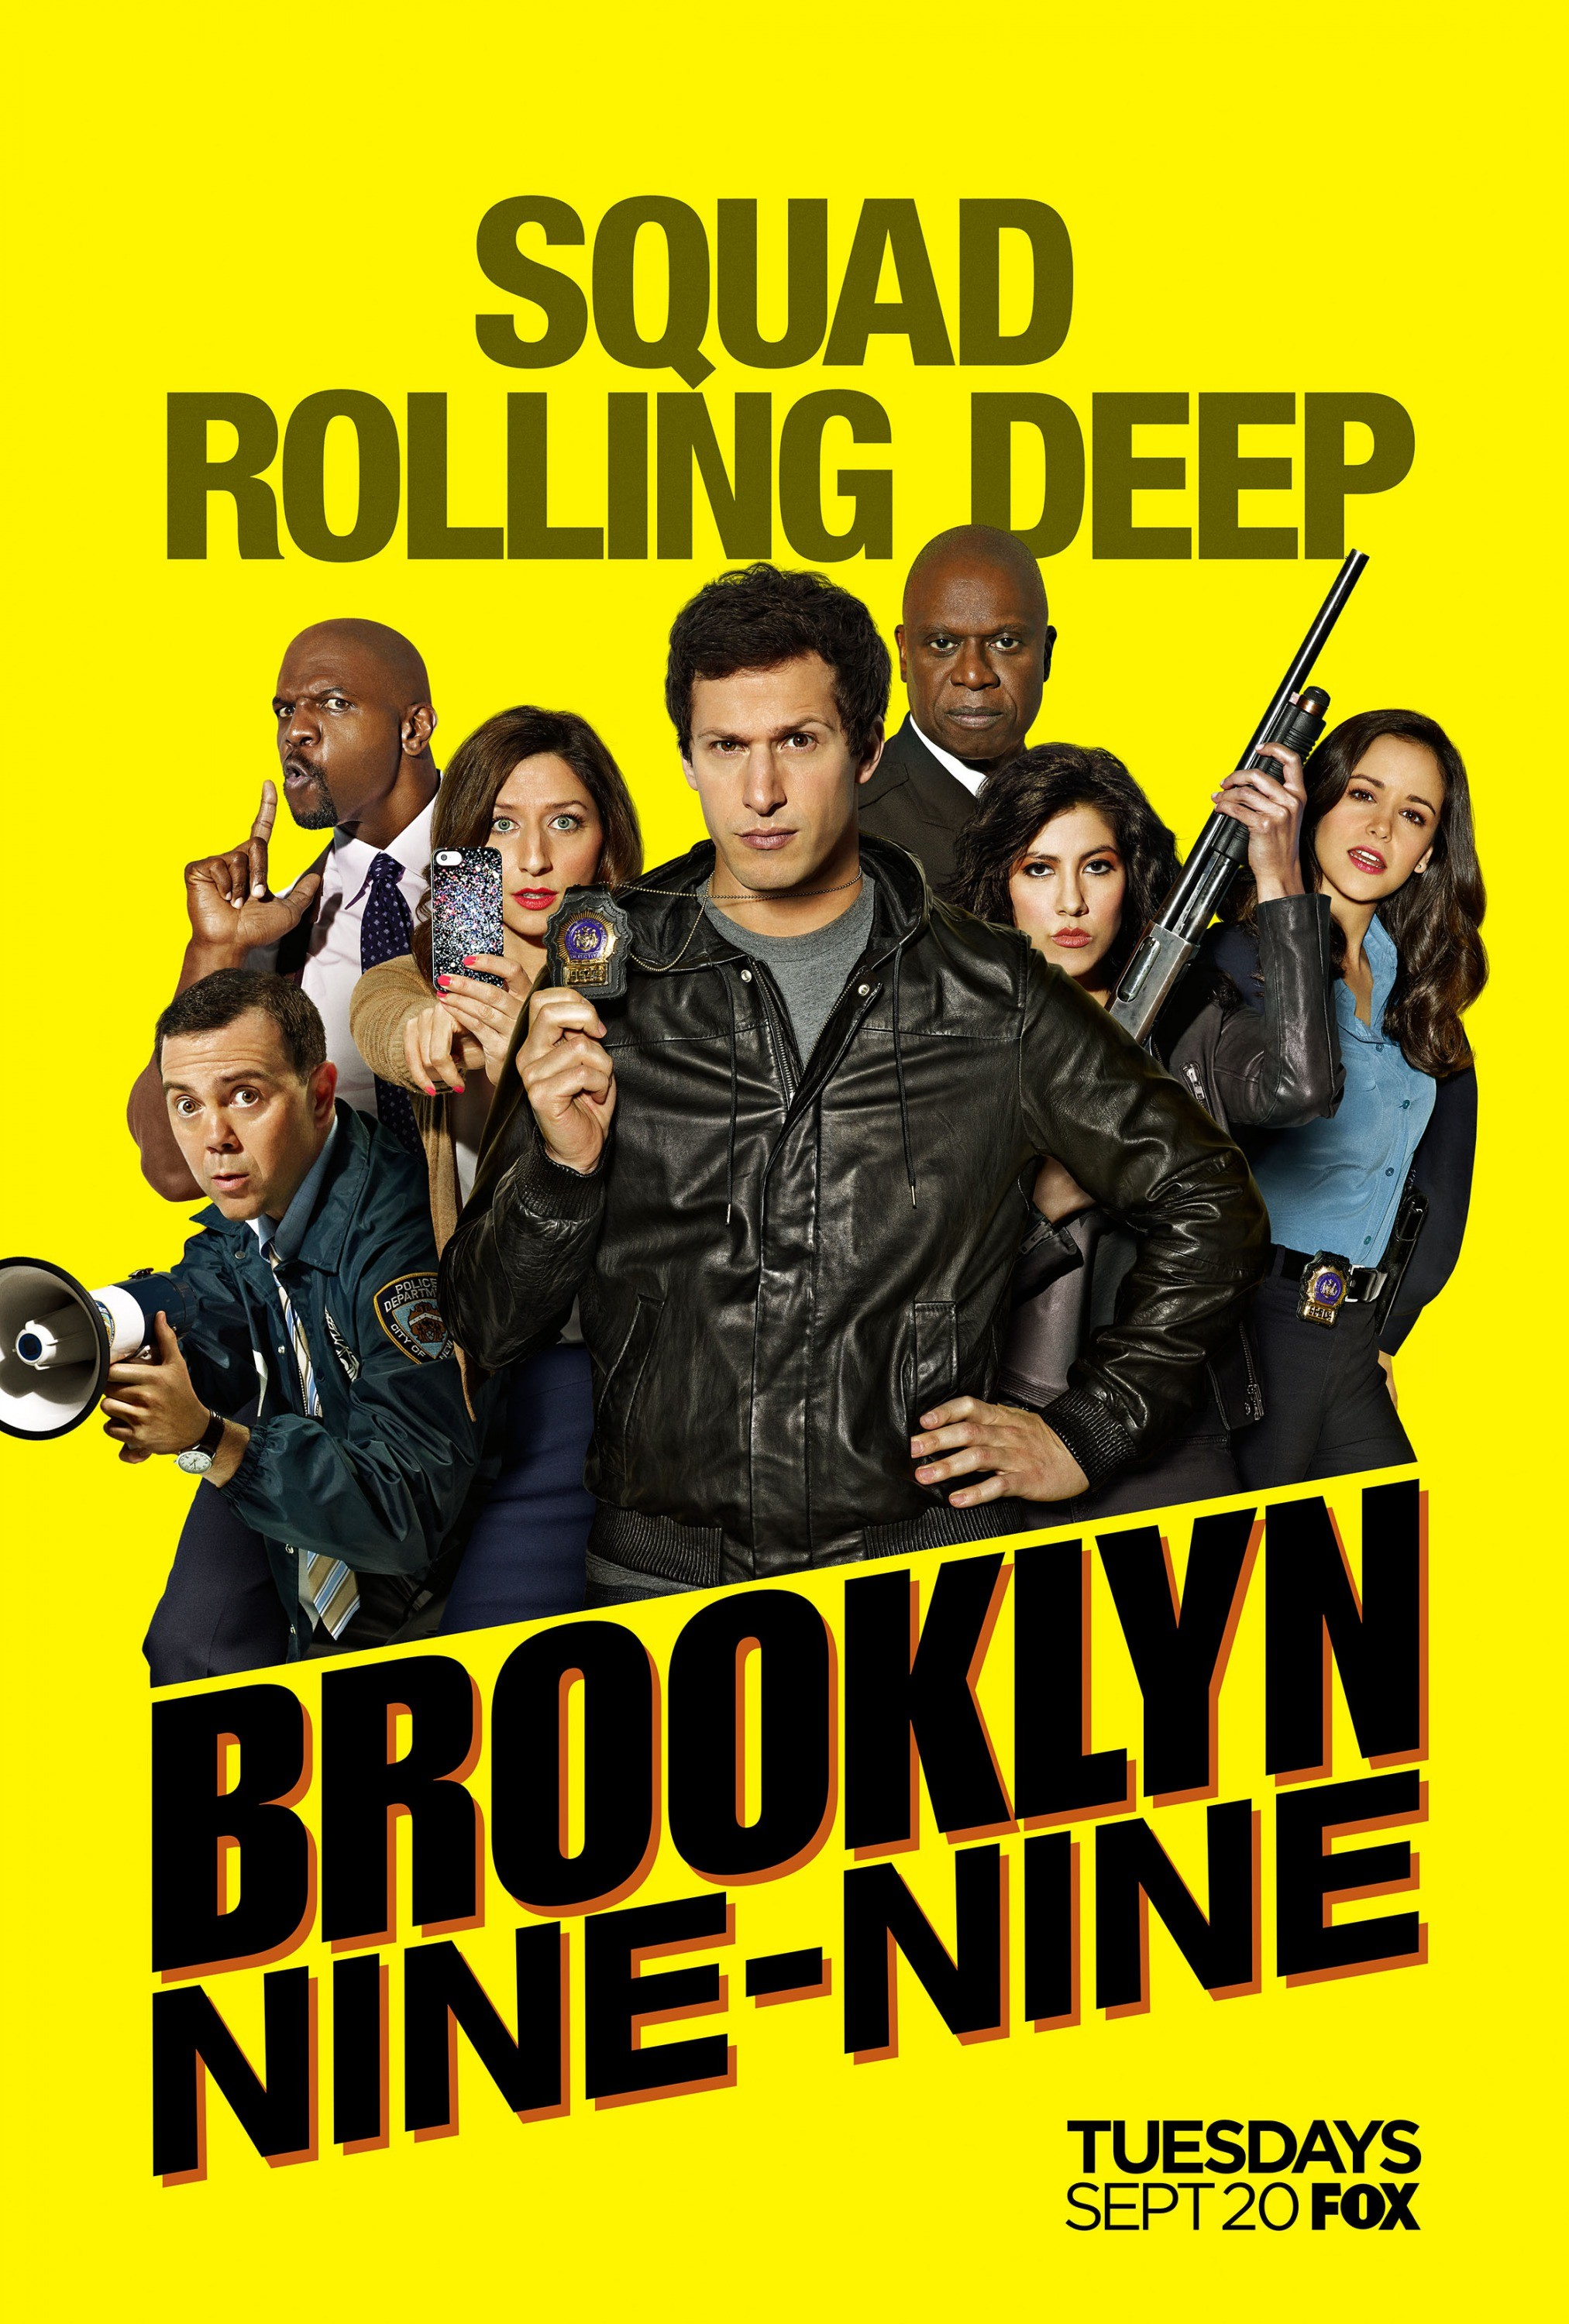 Brooklyn Nine-Nine Season 4 神烦警探 第四季